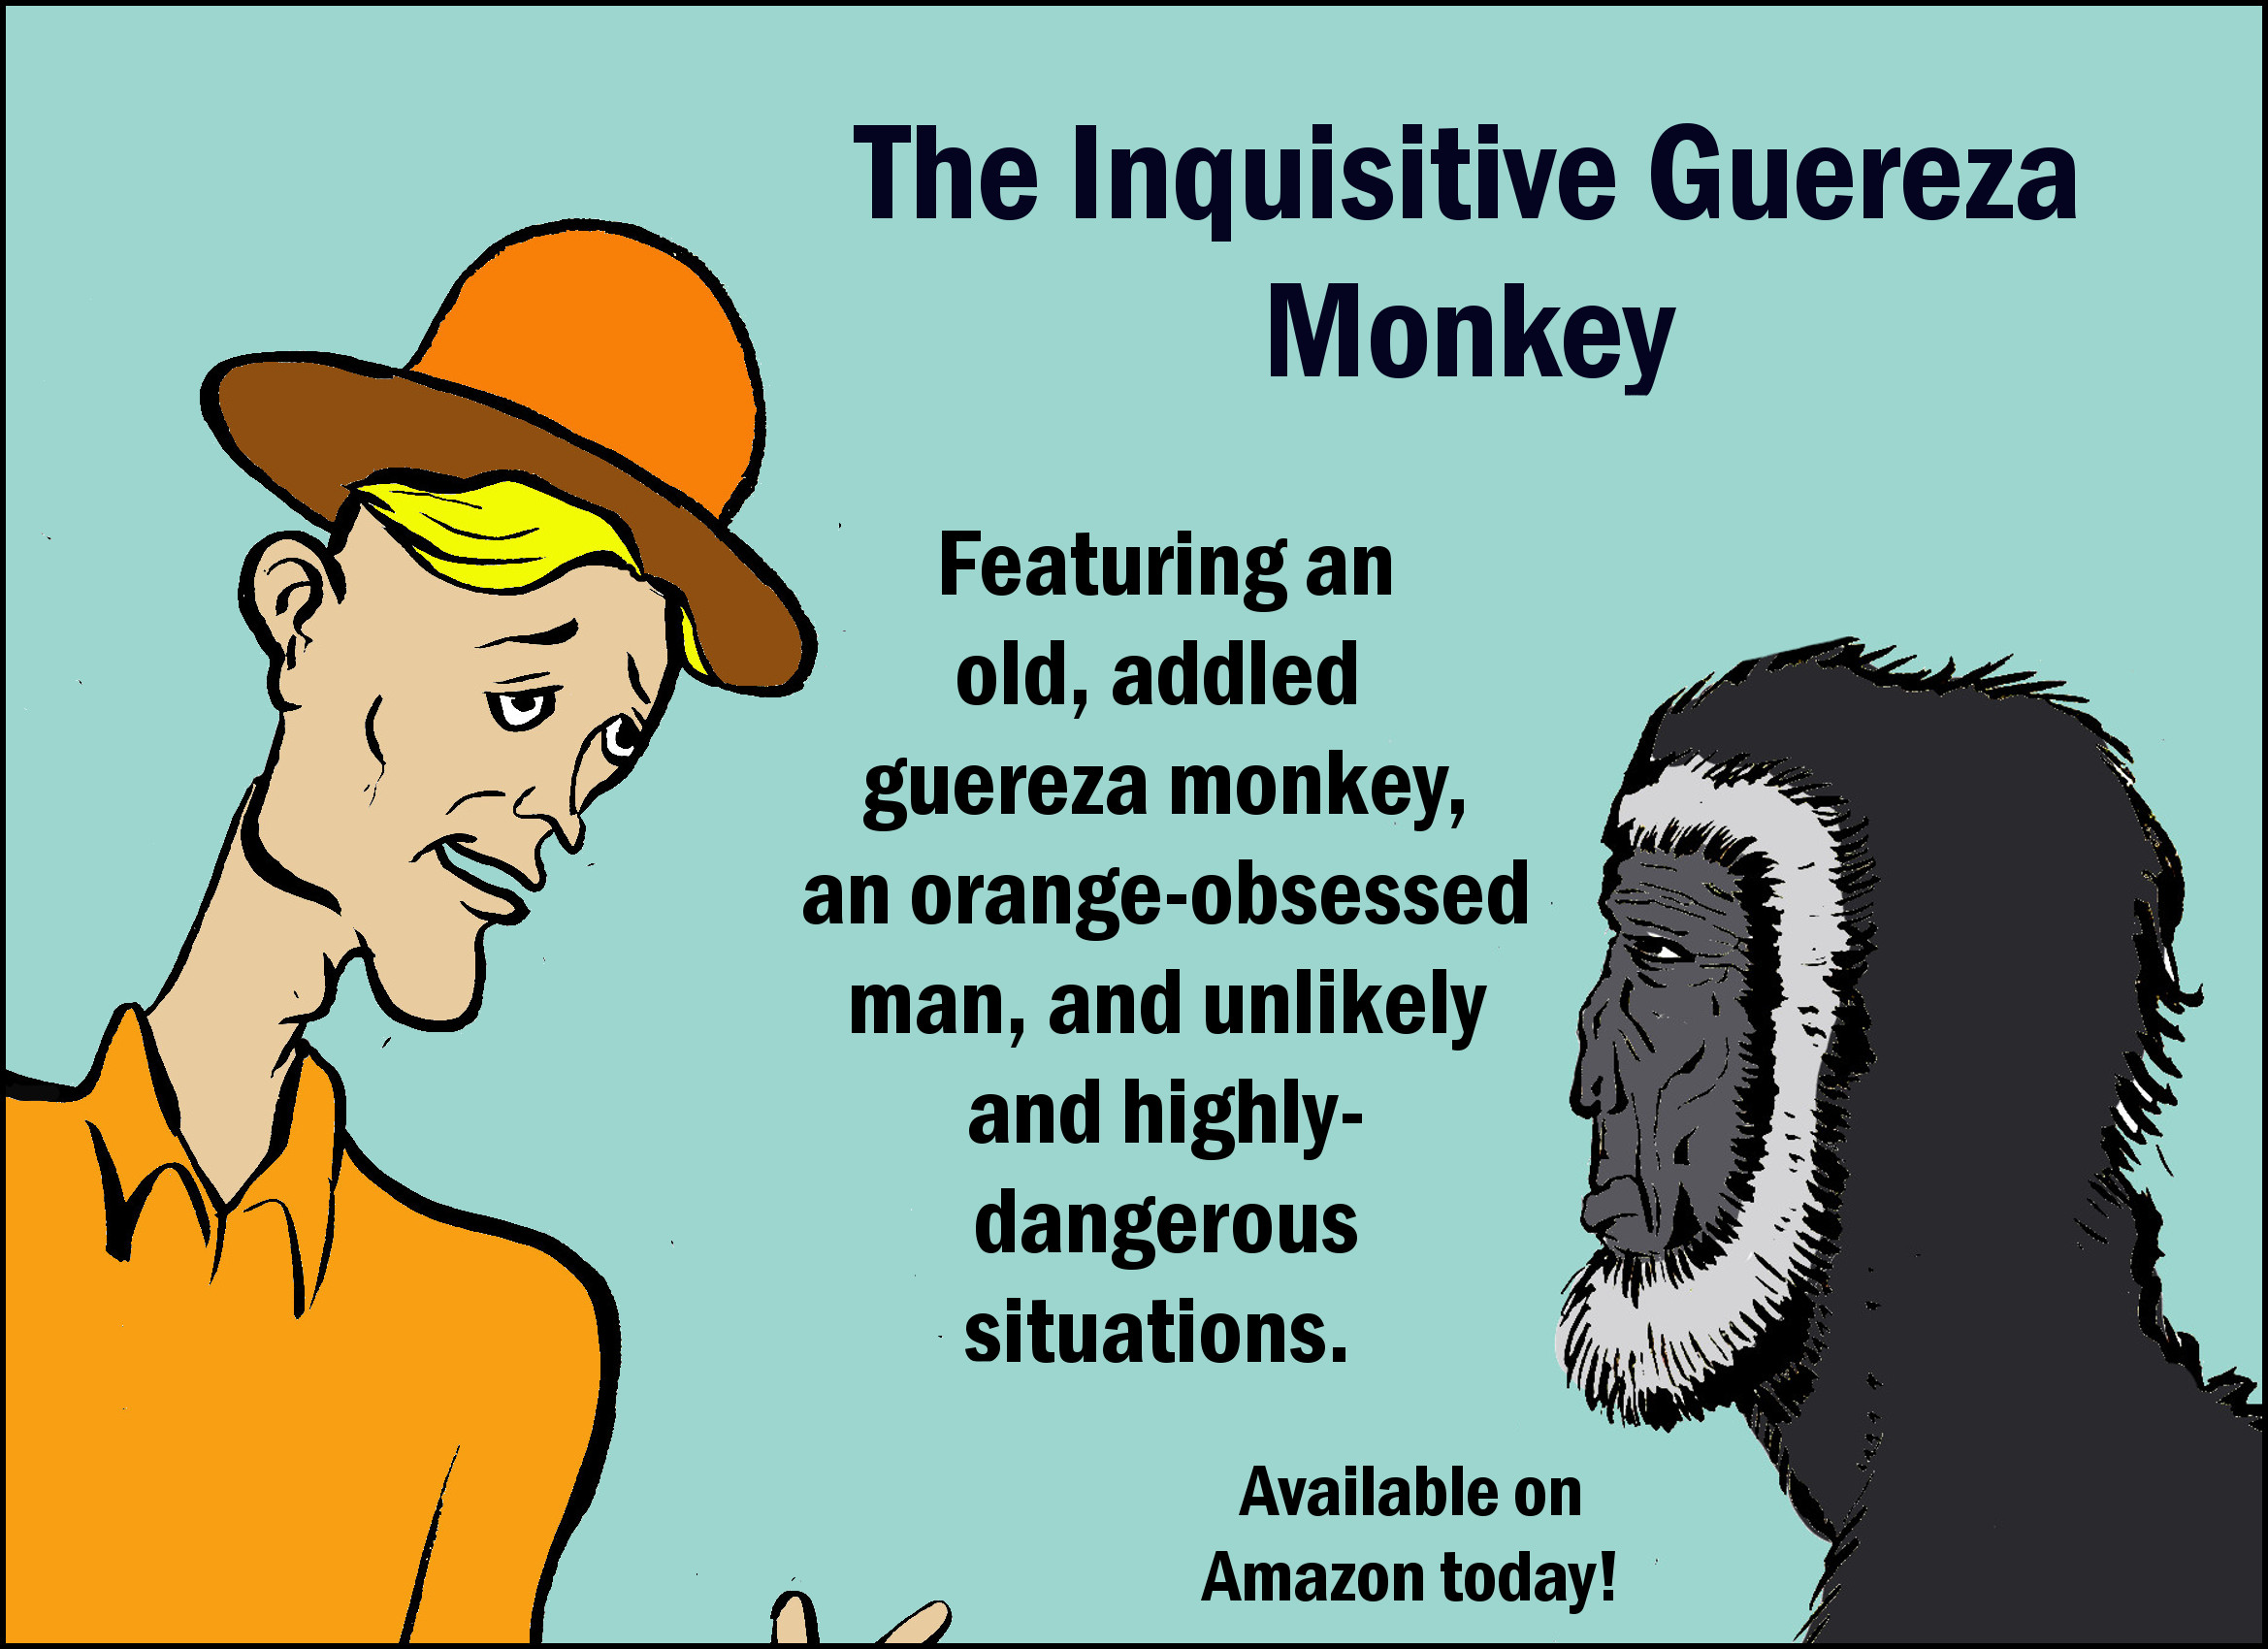 The Inquisitive Guereza is an addled old monkey bordering on senility who often makes horrendously bad decisions. Check out this book to learn more about him.